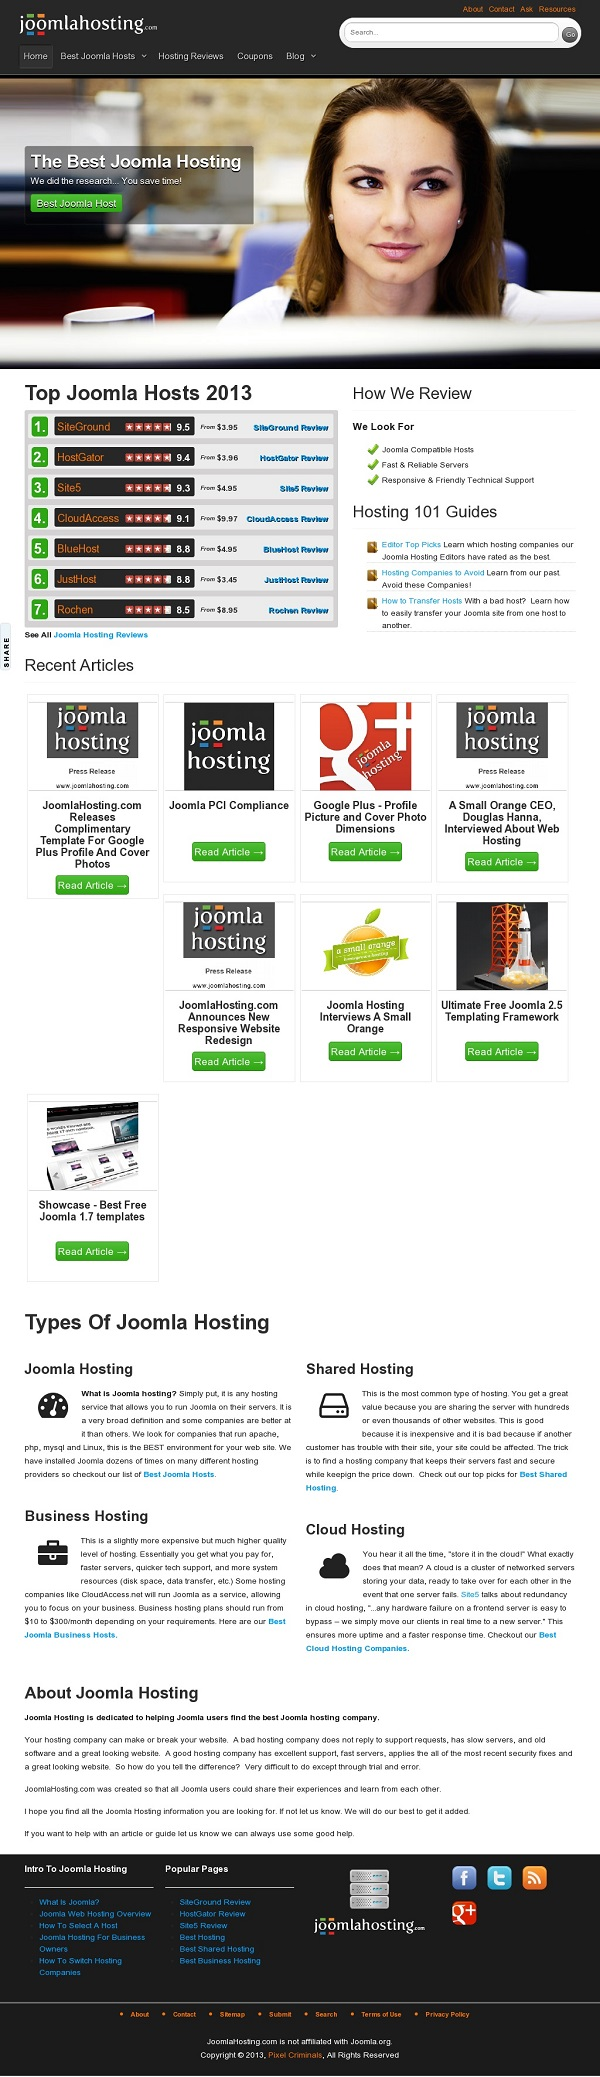 Joomla Hosting Website